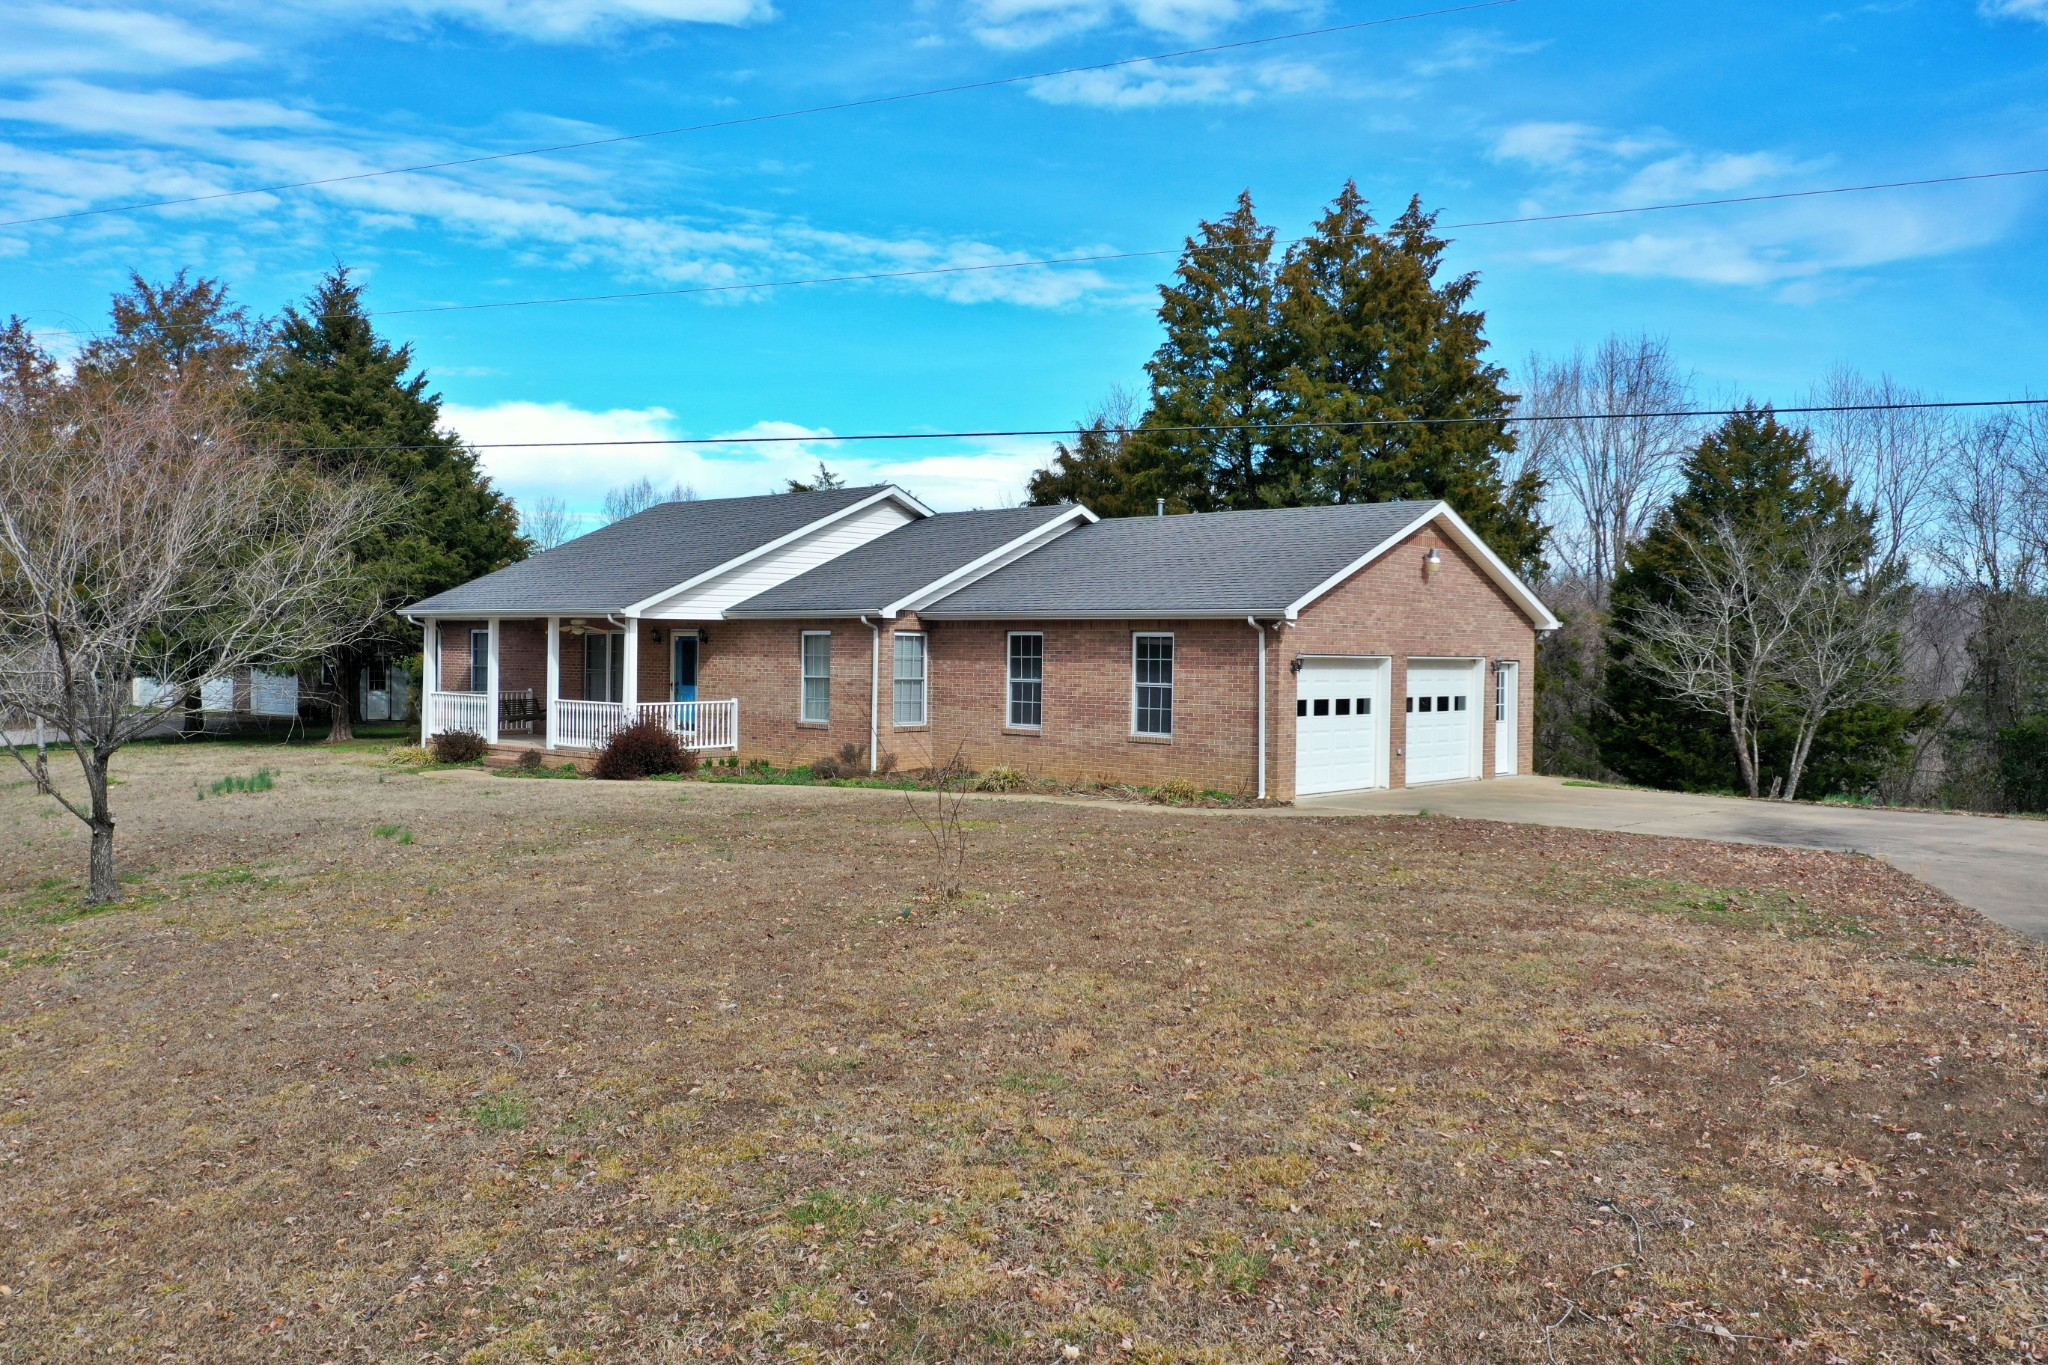 1691 Burns Hill Rd, Lobelville, TN 37097 - Lobelville, TN real estate listing